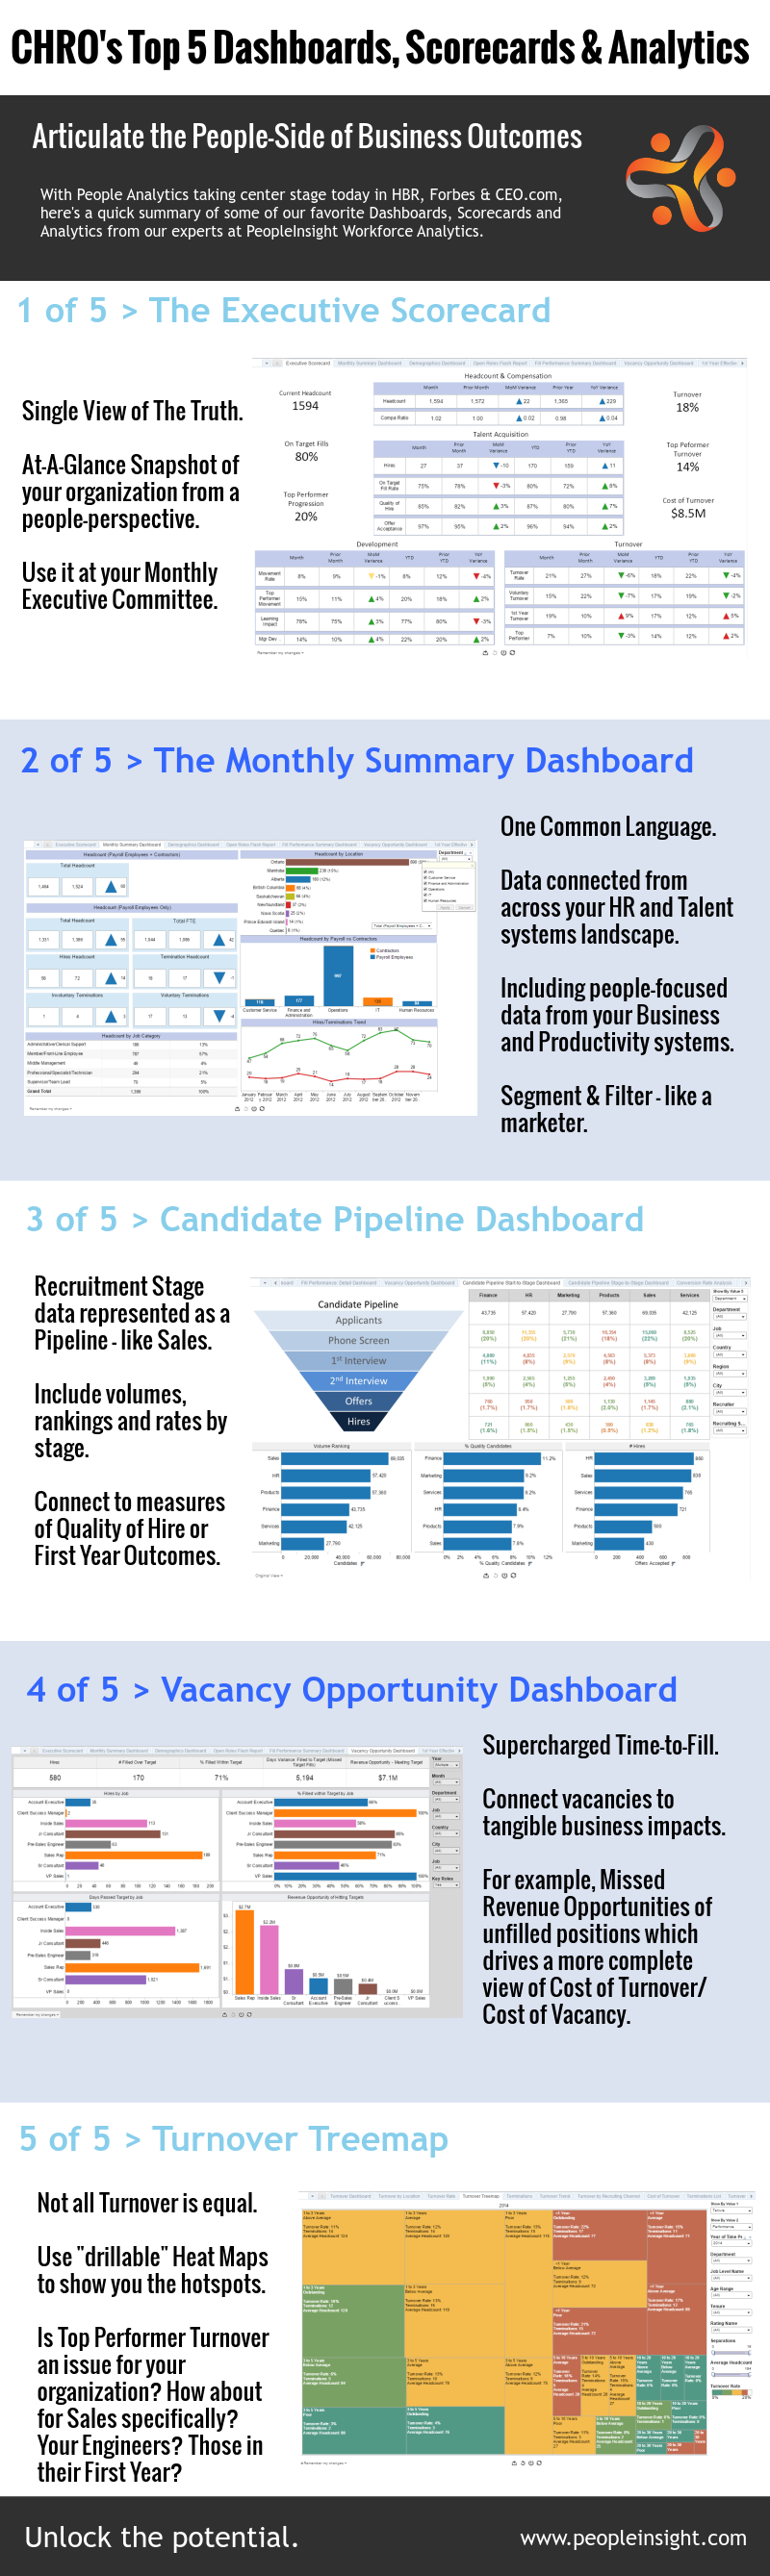 Top 5 HR Analytics and Dashboards